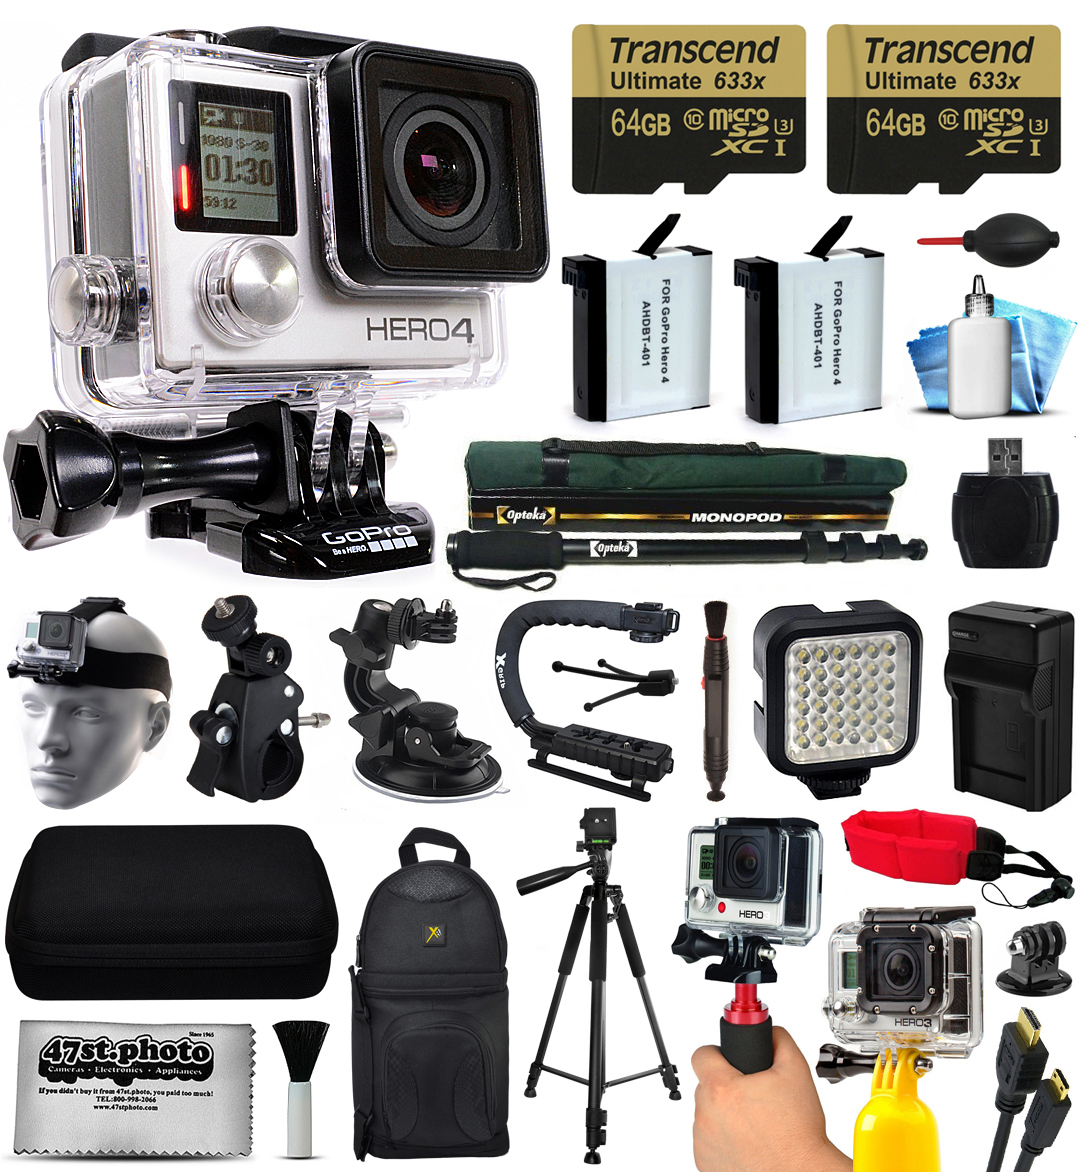 GoPro HERO4 Silver Edition 4K Action Camera with 2x Micro SD Cards, 2x Batteries, Charger, Card Reader, Backpack, Helmet Strap, Action Handle, Car Mount, Selfie Stick, Tripod, Case, HDMI Cable + More